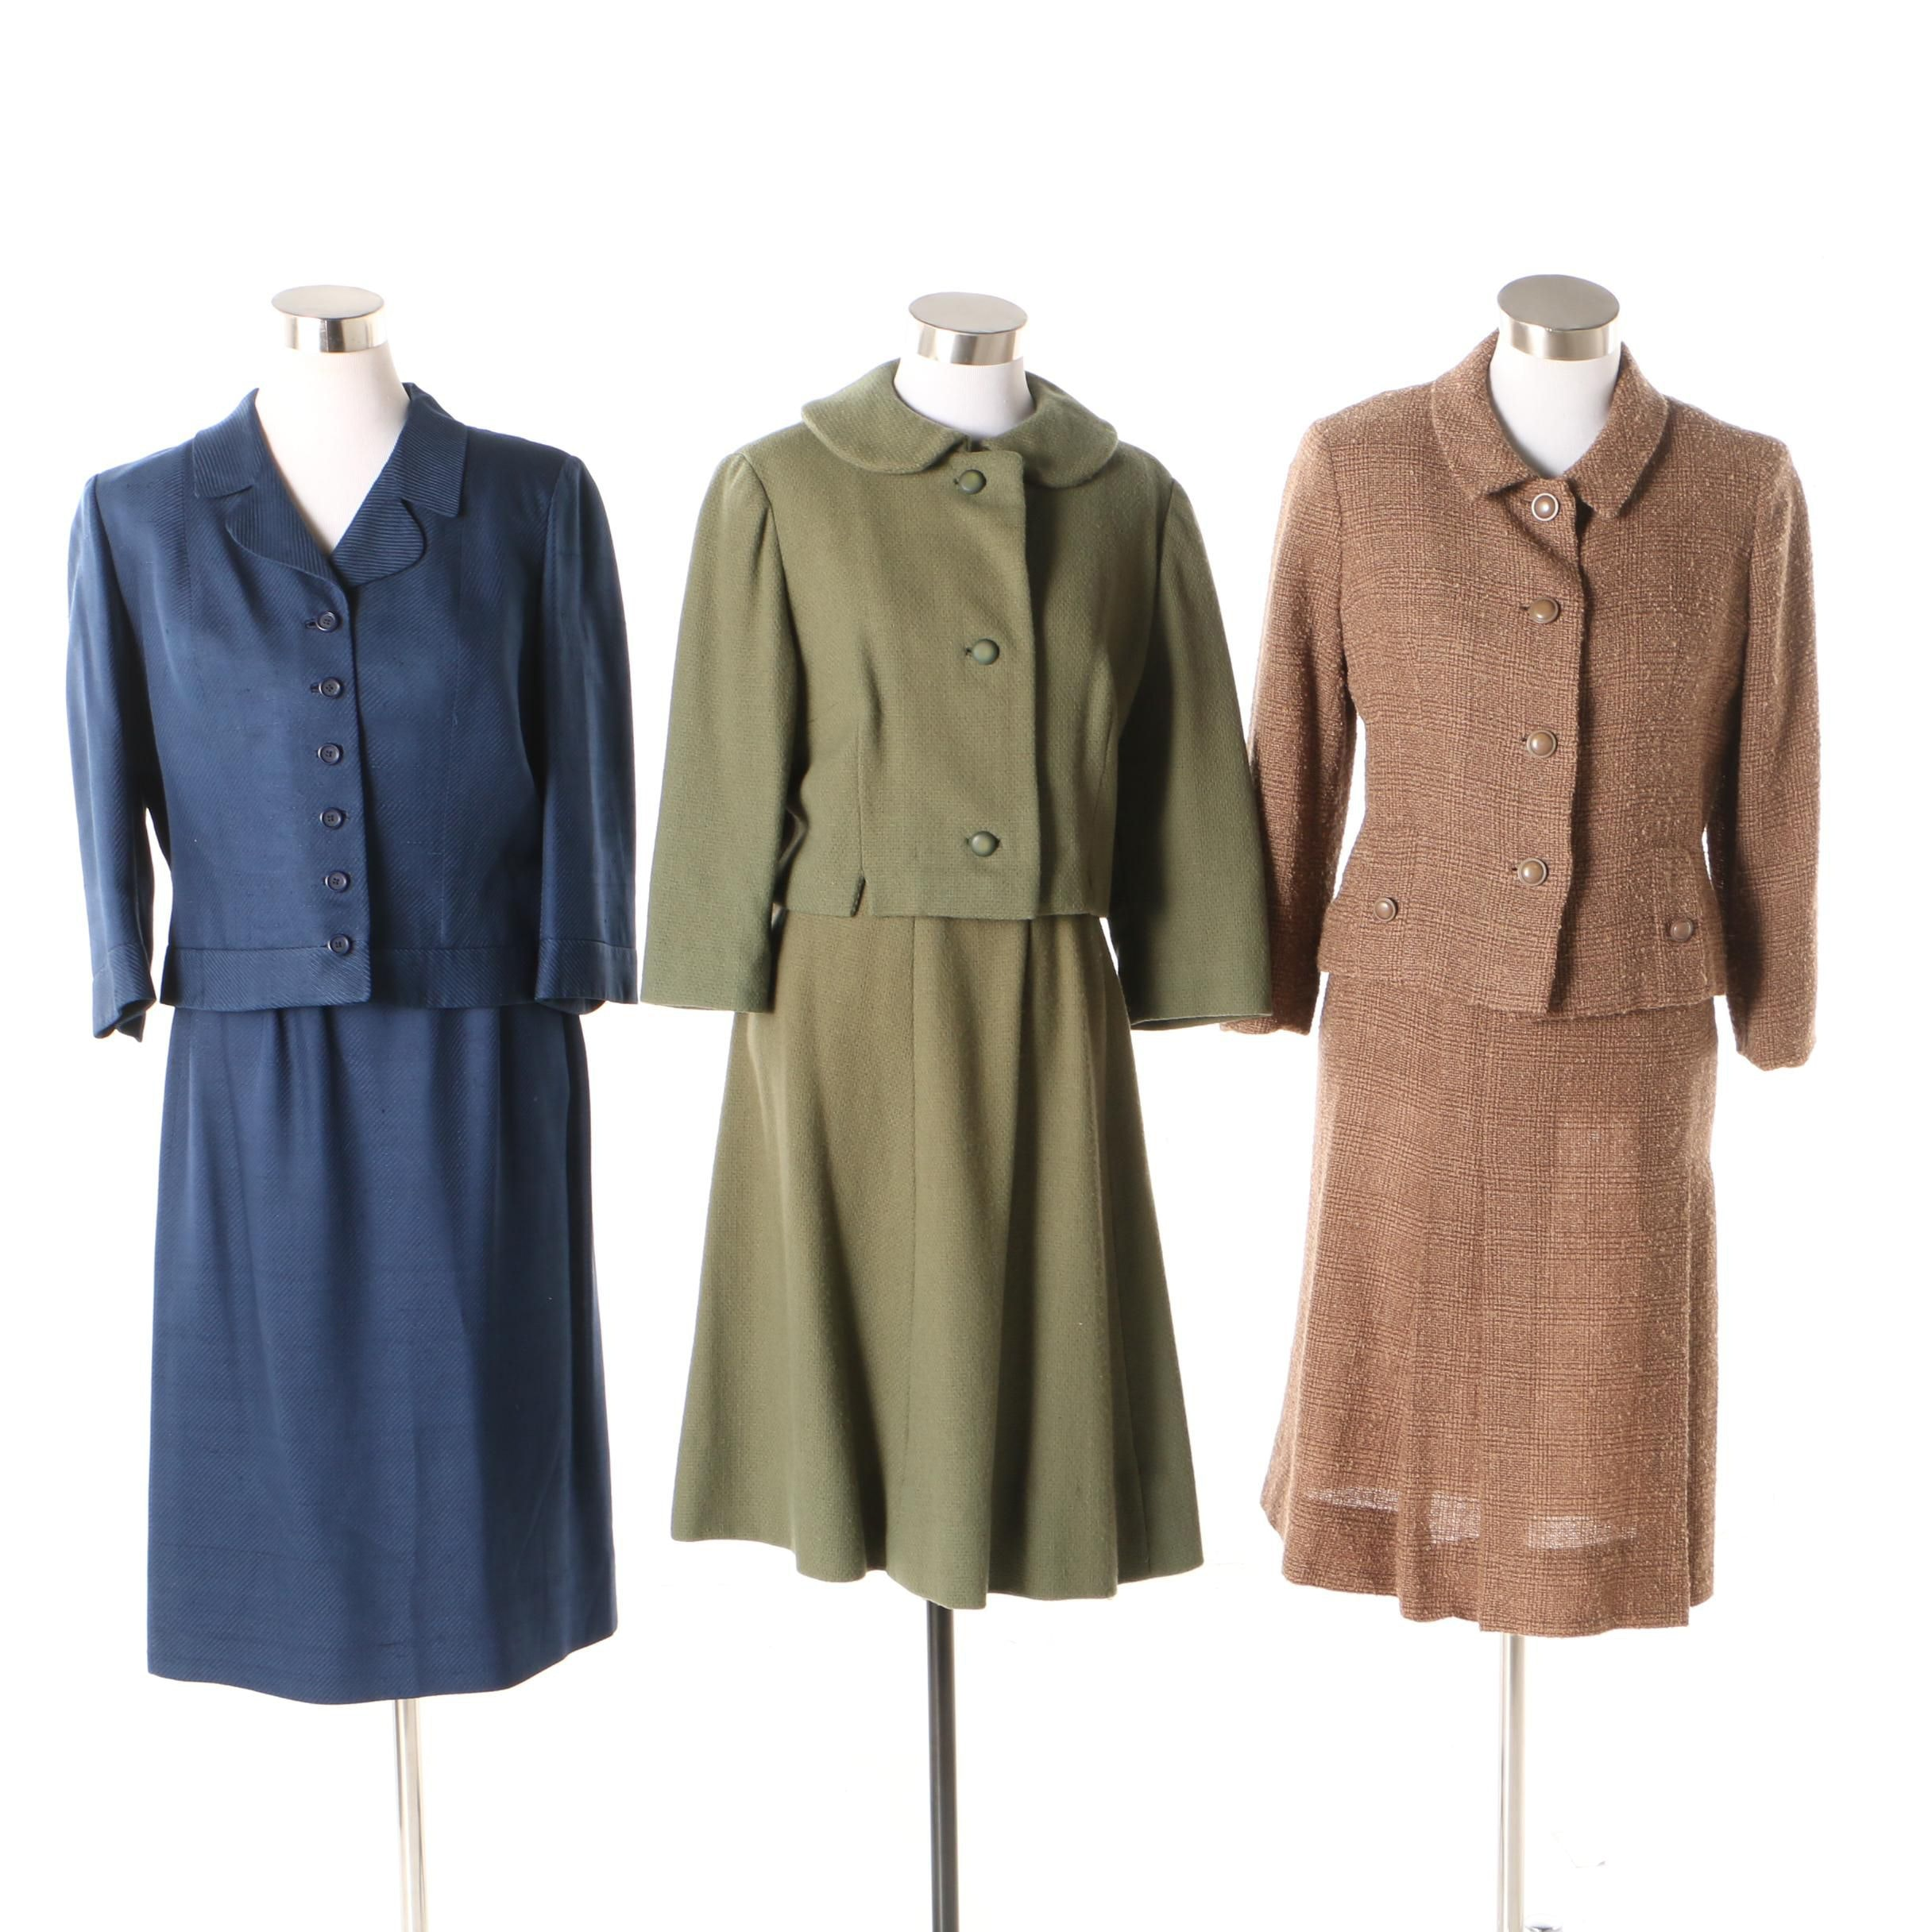 Women's Skirt Suits Including Mary Sachs and Adele California, 1960s Vintage